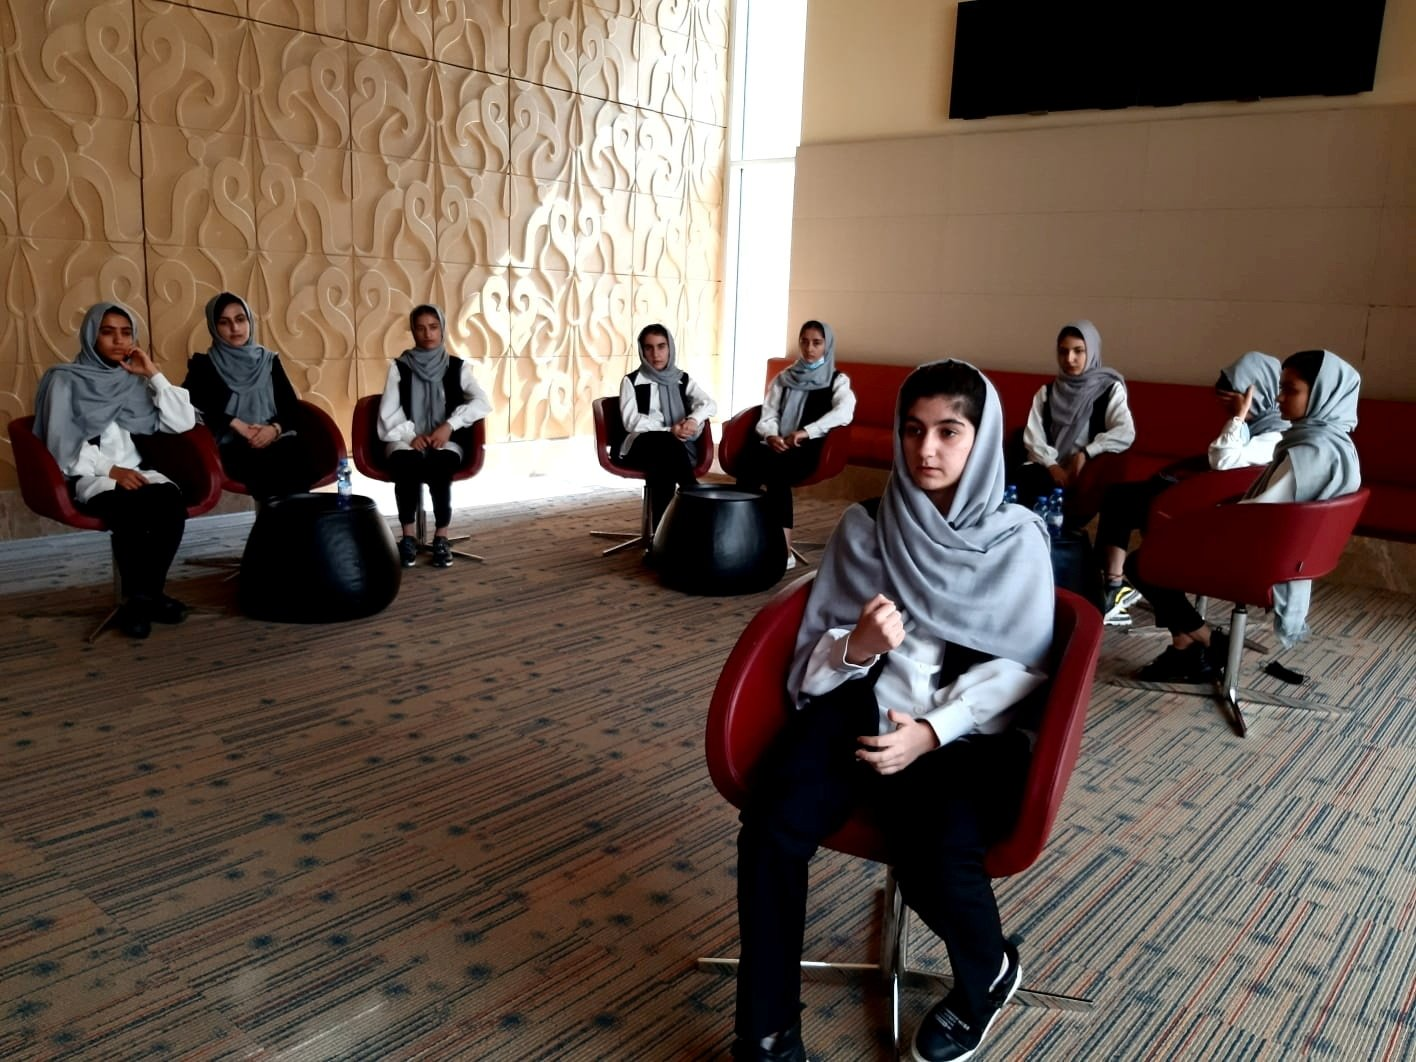 Ayda Haydarpour, a member of an Afghan all-girls robotics team who were evacuated last week from Afghanistan, talks during an interview with Reuters in Doha, Qatar, Aug. 25, 2021. (Reuters Photo)